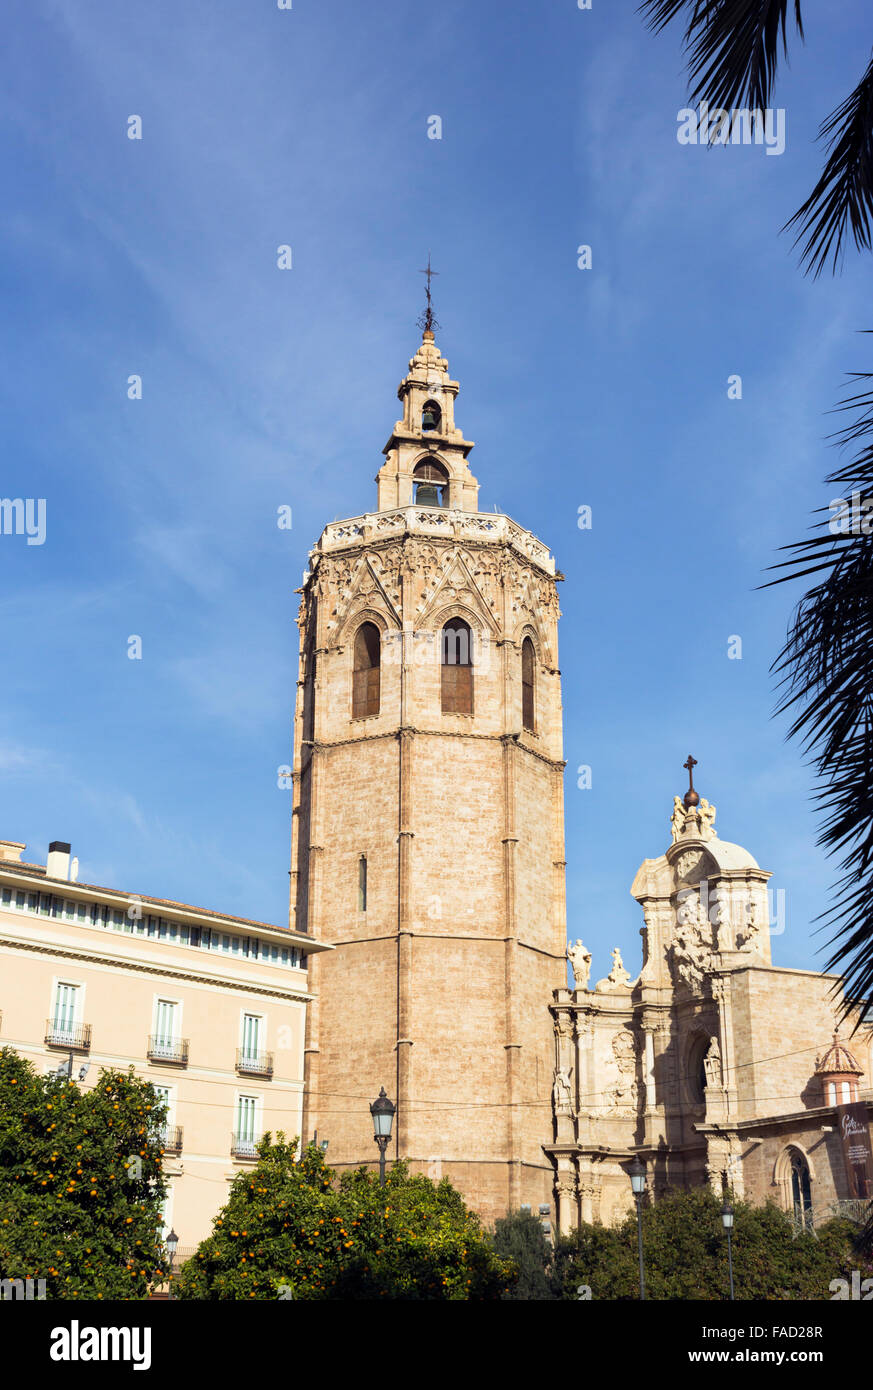 Torre del Micalet, or La torre del Miguelete, once the minaret of the old mosque, now the belltower of  Valencia Stock Photo